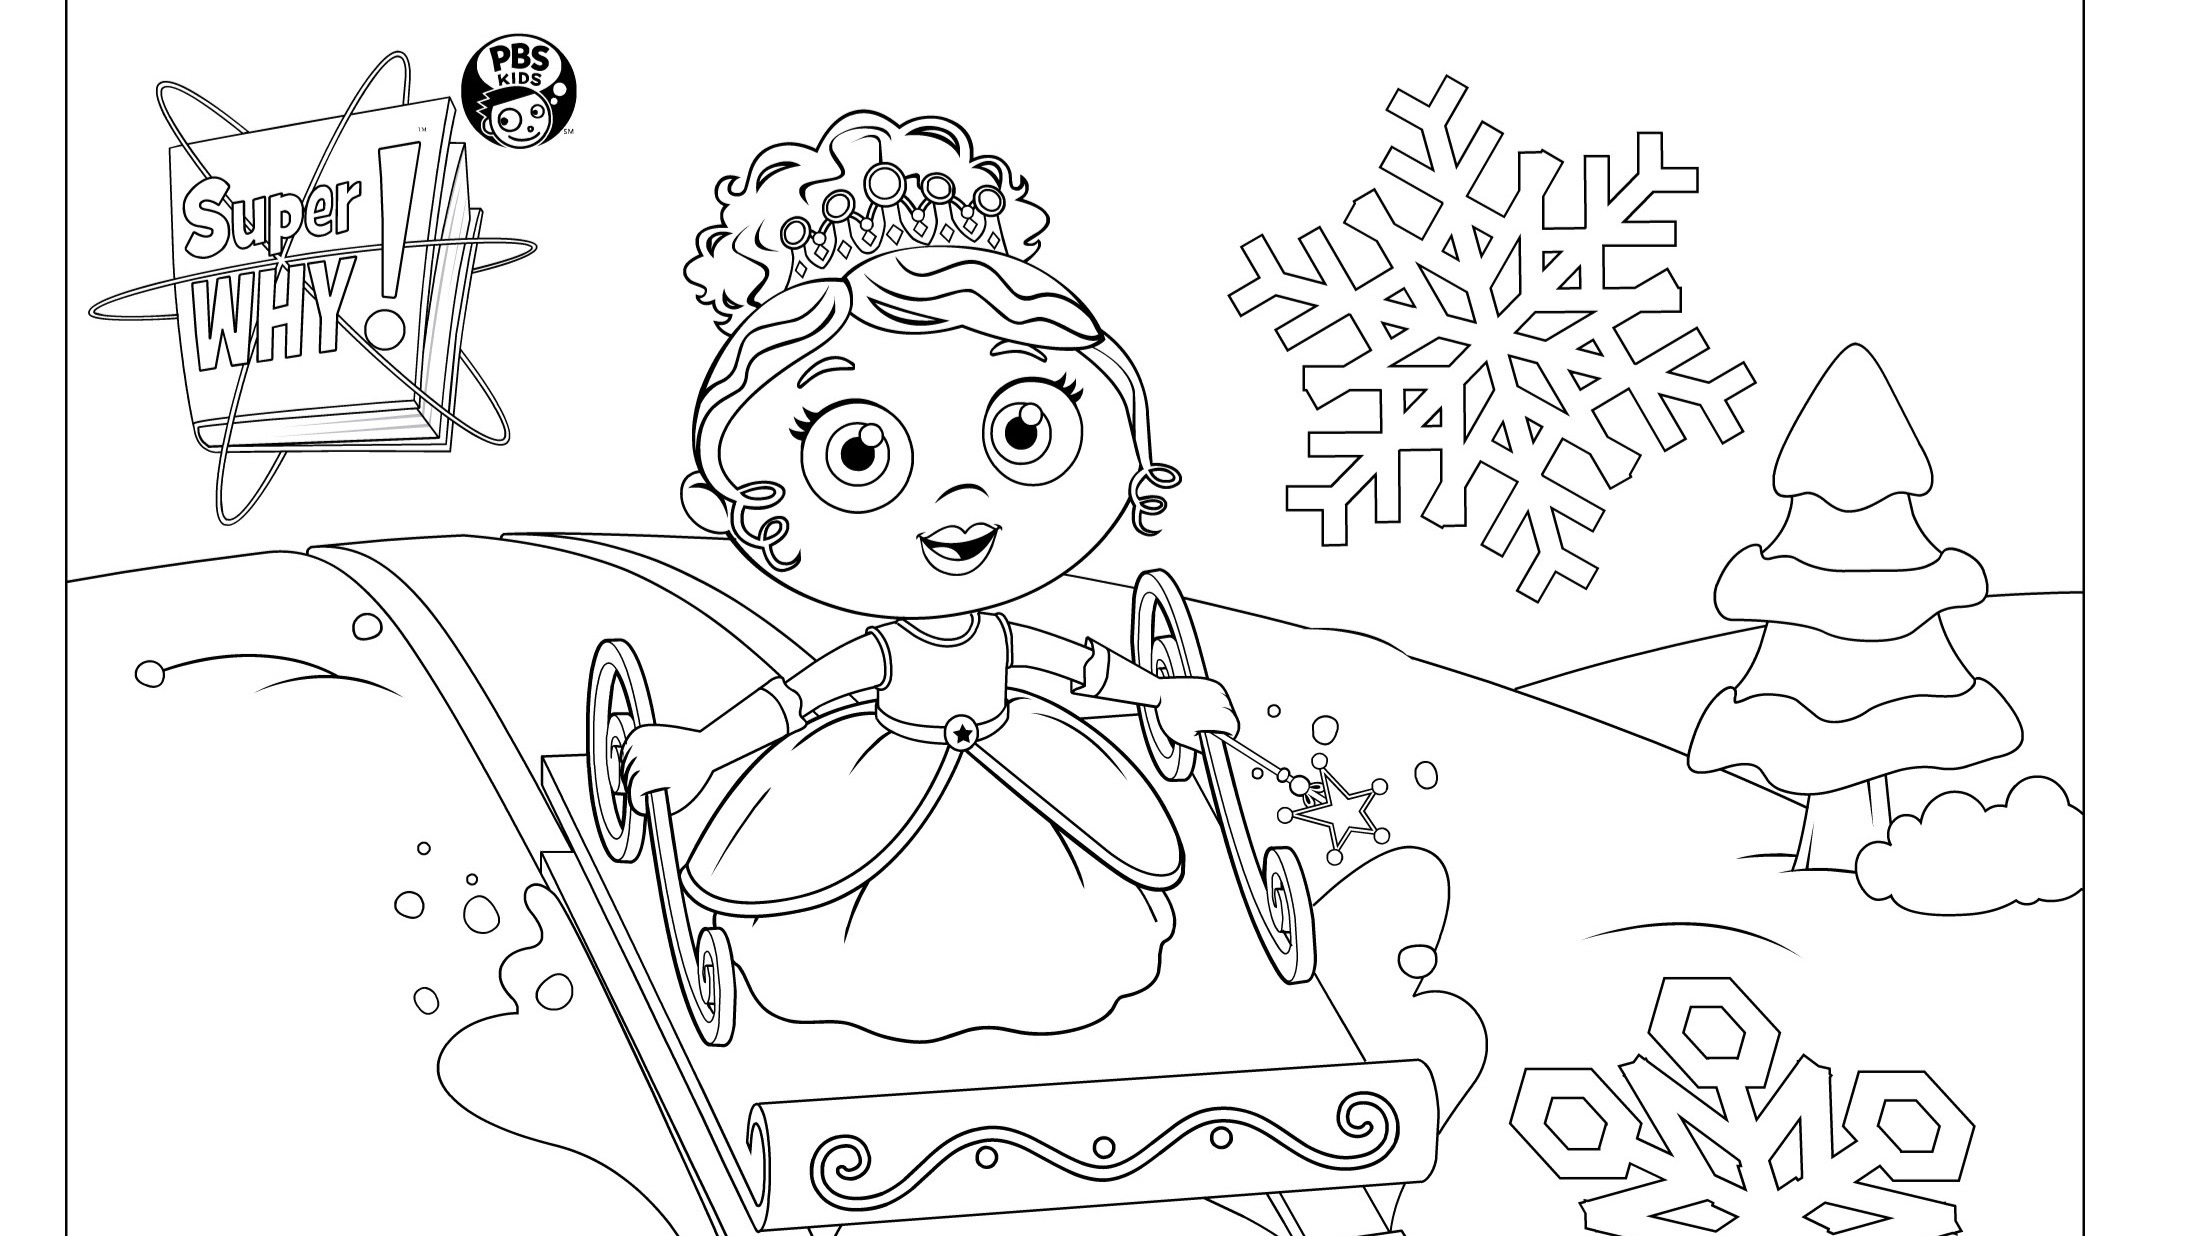 Princess Presto Sledding | Kids Coloring Pages | PBS KIDS for Parents